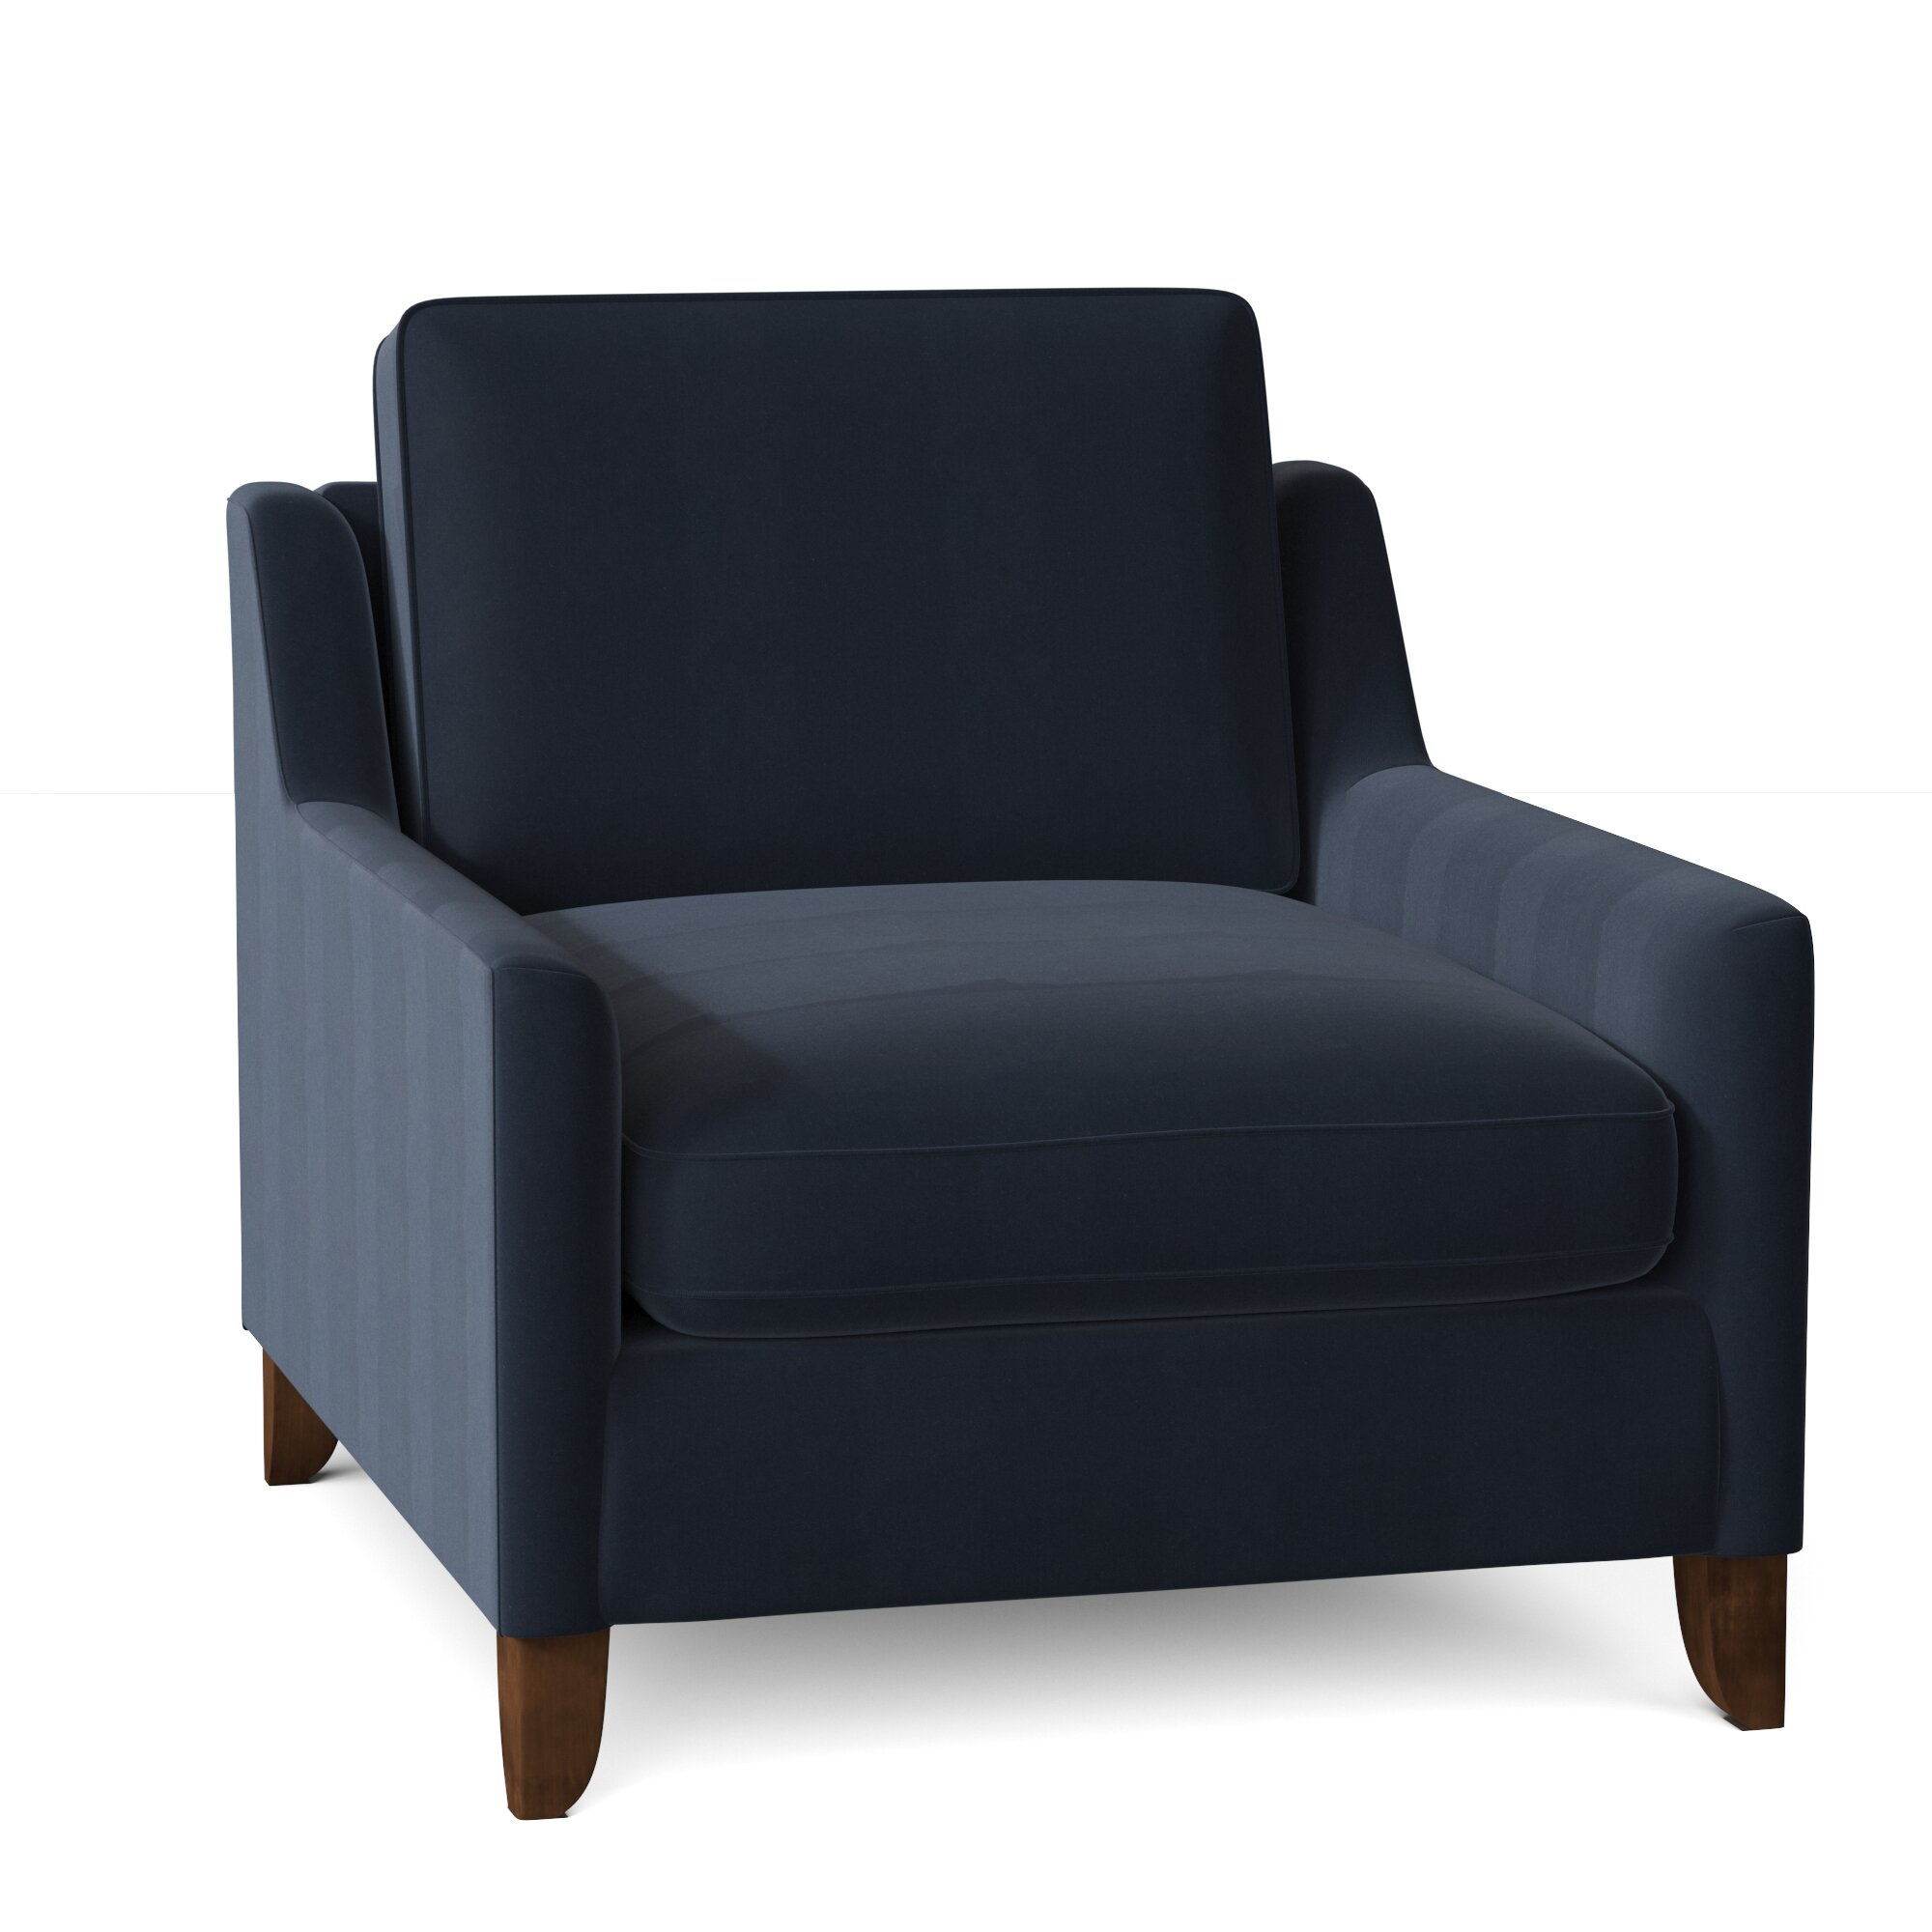 Haleigh Armchair With Haleigh Armchairs (View 3 of 15)